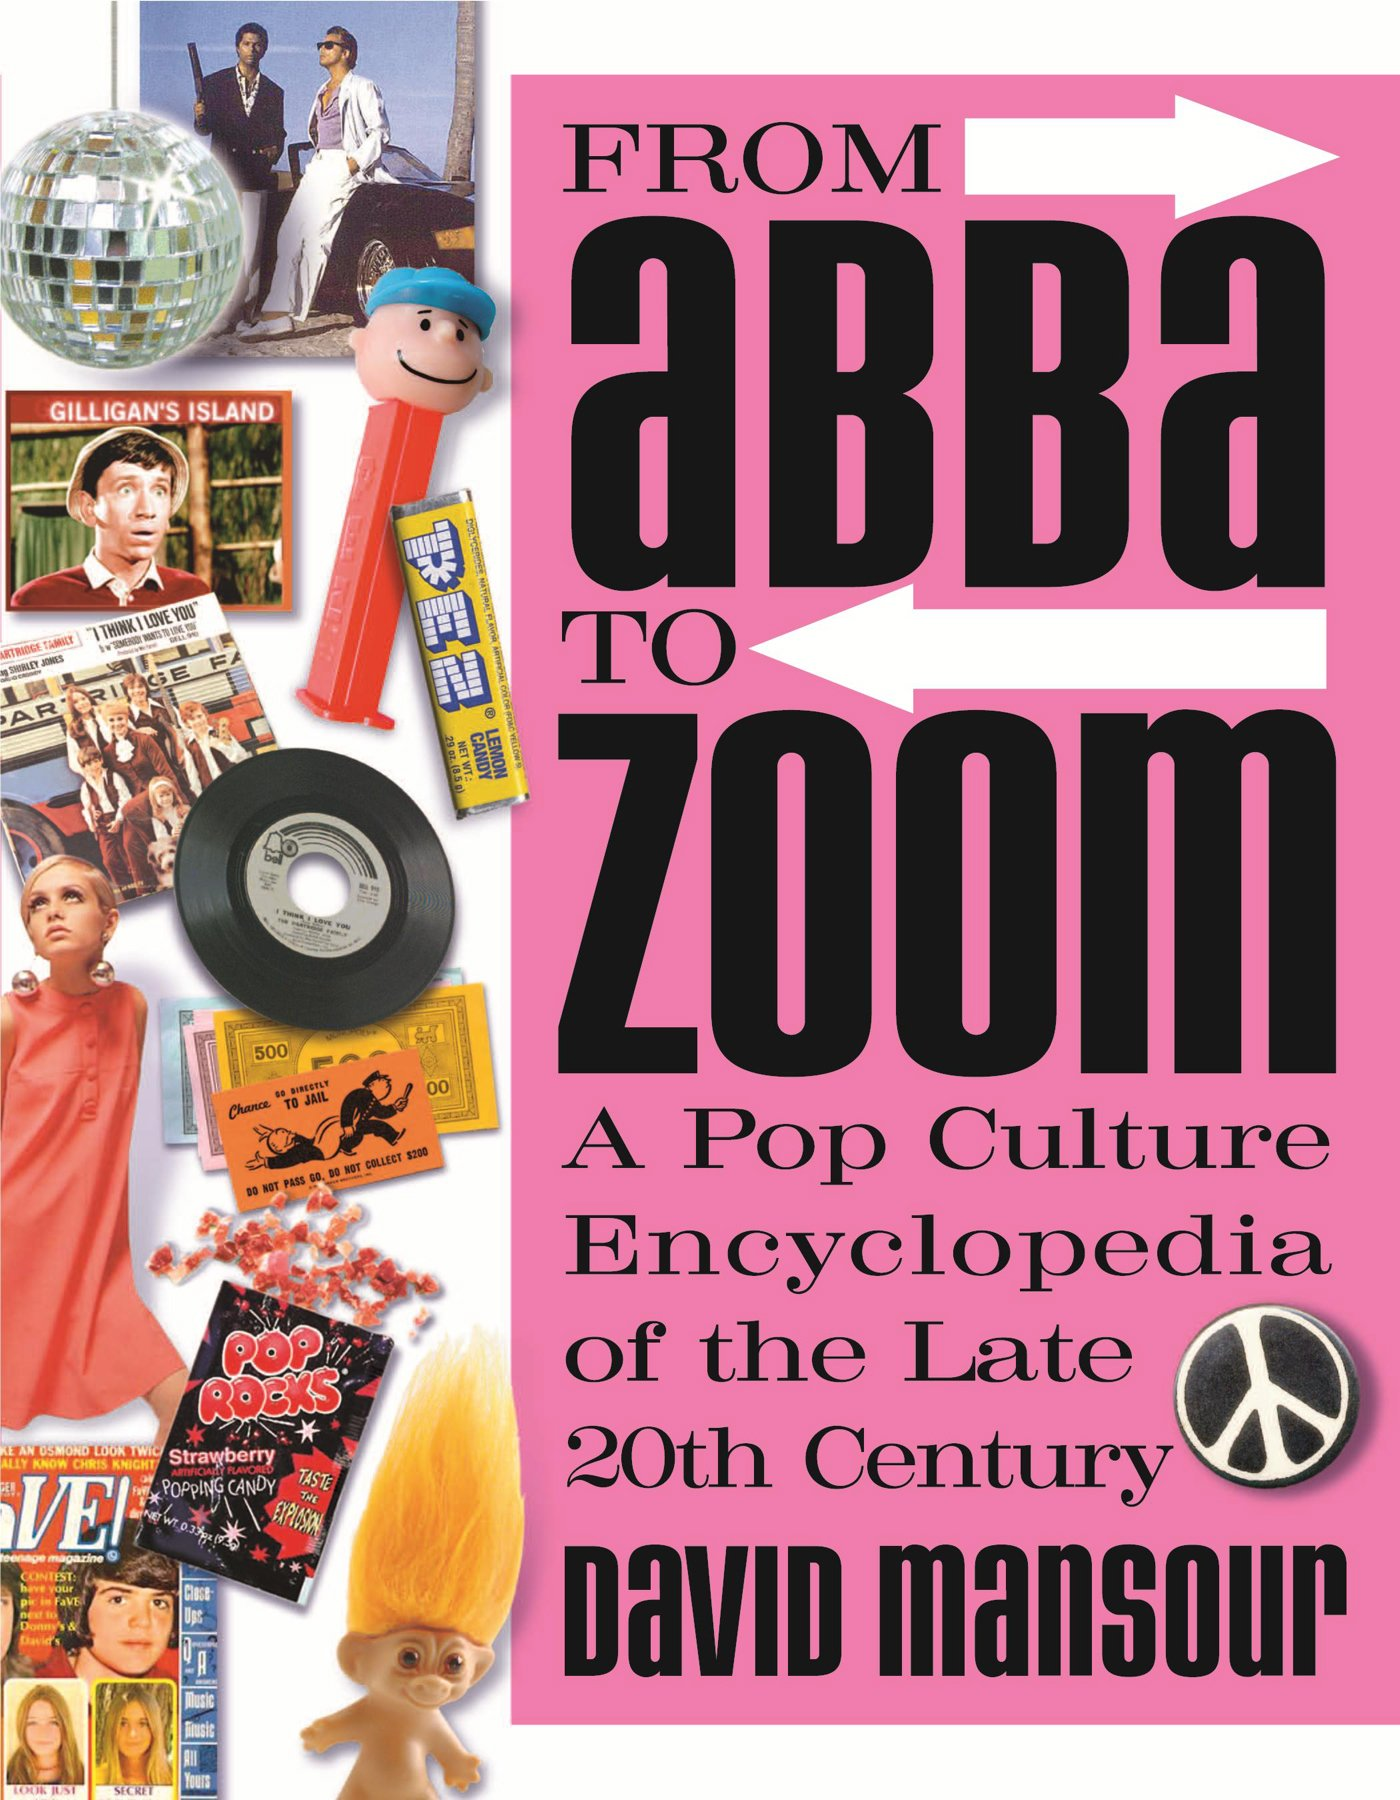 From Abba to Zoom: A Pop Culture Encyclopedia of the Late 20th Century Paperback – June 1, 2005 David Mansour Andrews McMeel Publishing 0740751182 1970